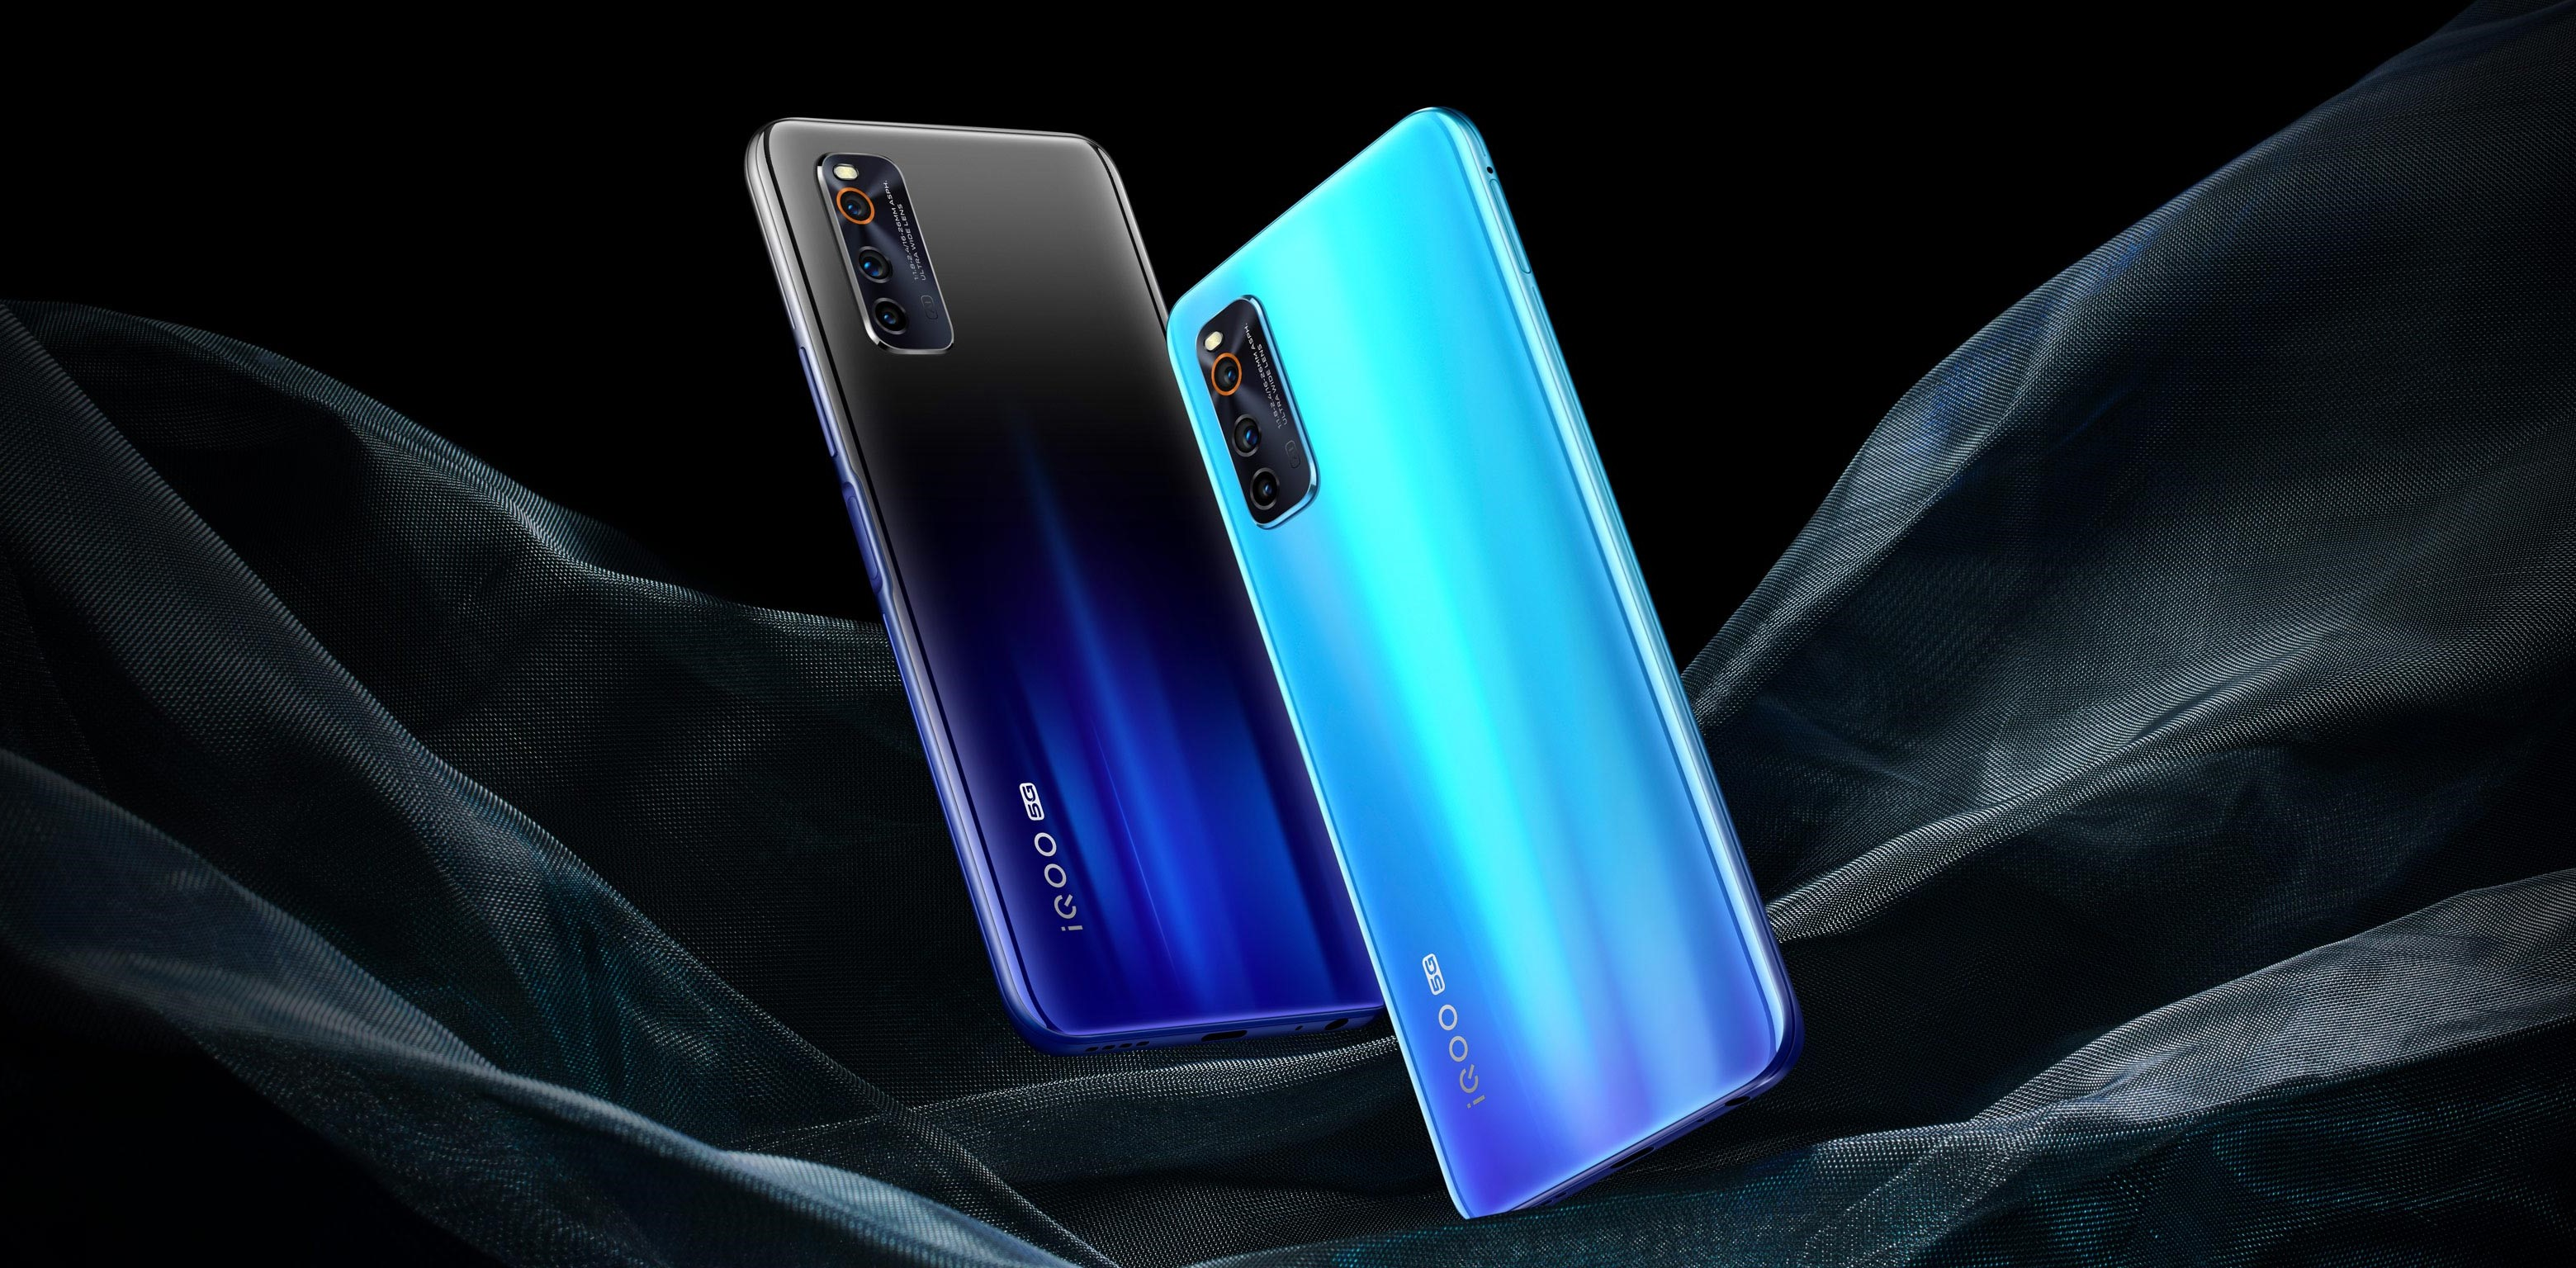 Image of article 'A probable iQOO Z1 shows up on Geekbench ahead of its launch'